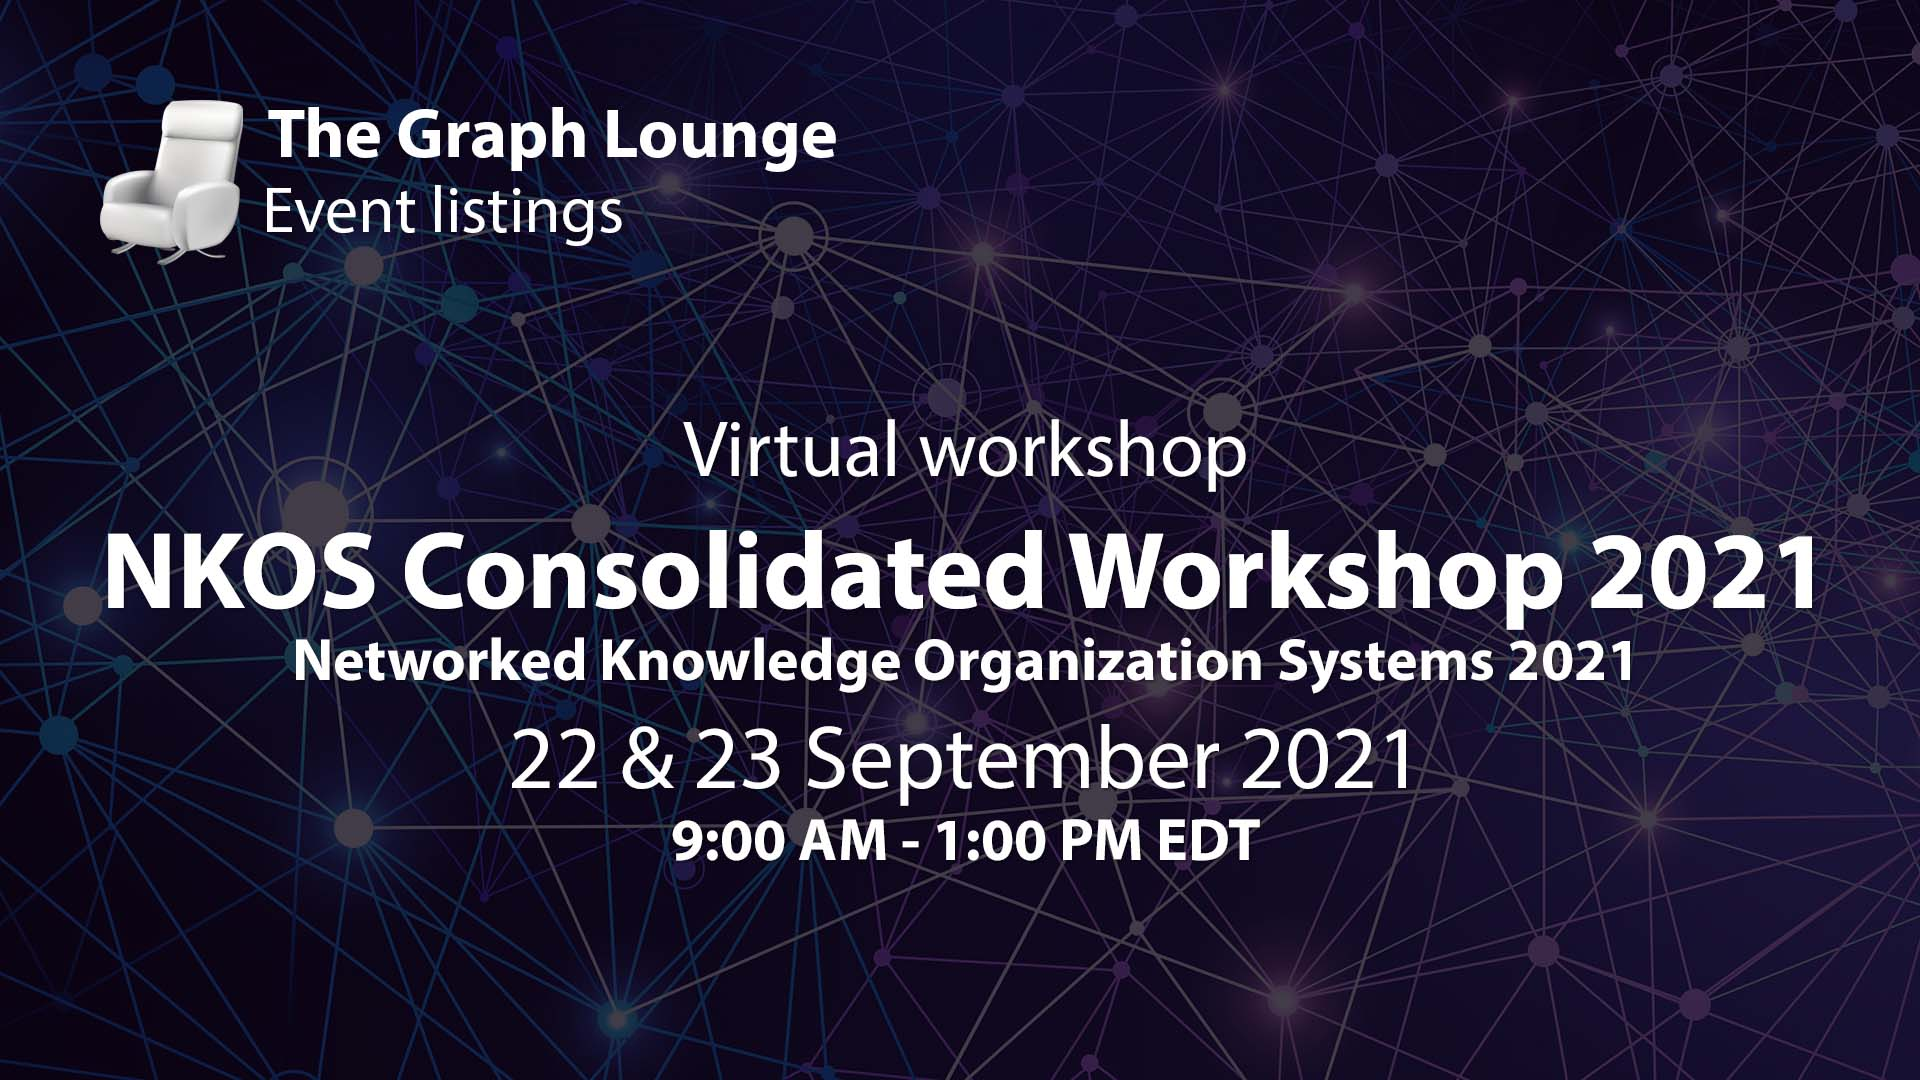 NKOS Consolidated Workshop 2021 (Networked Knowledge Organization Systems 2021)